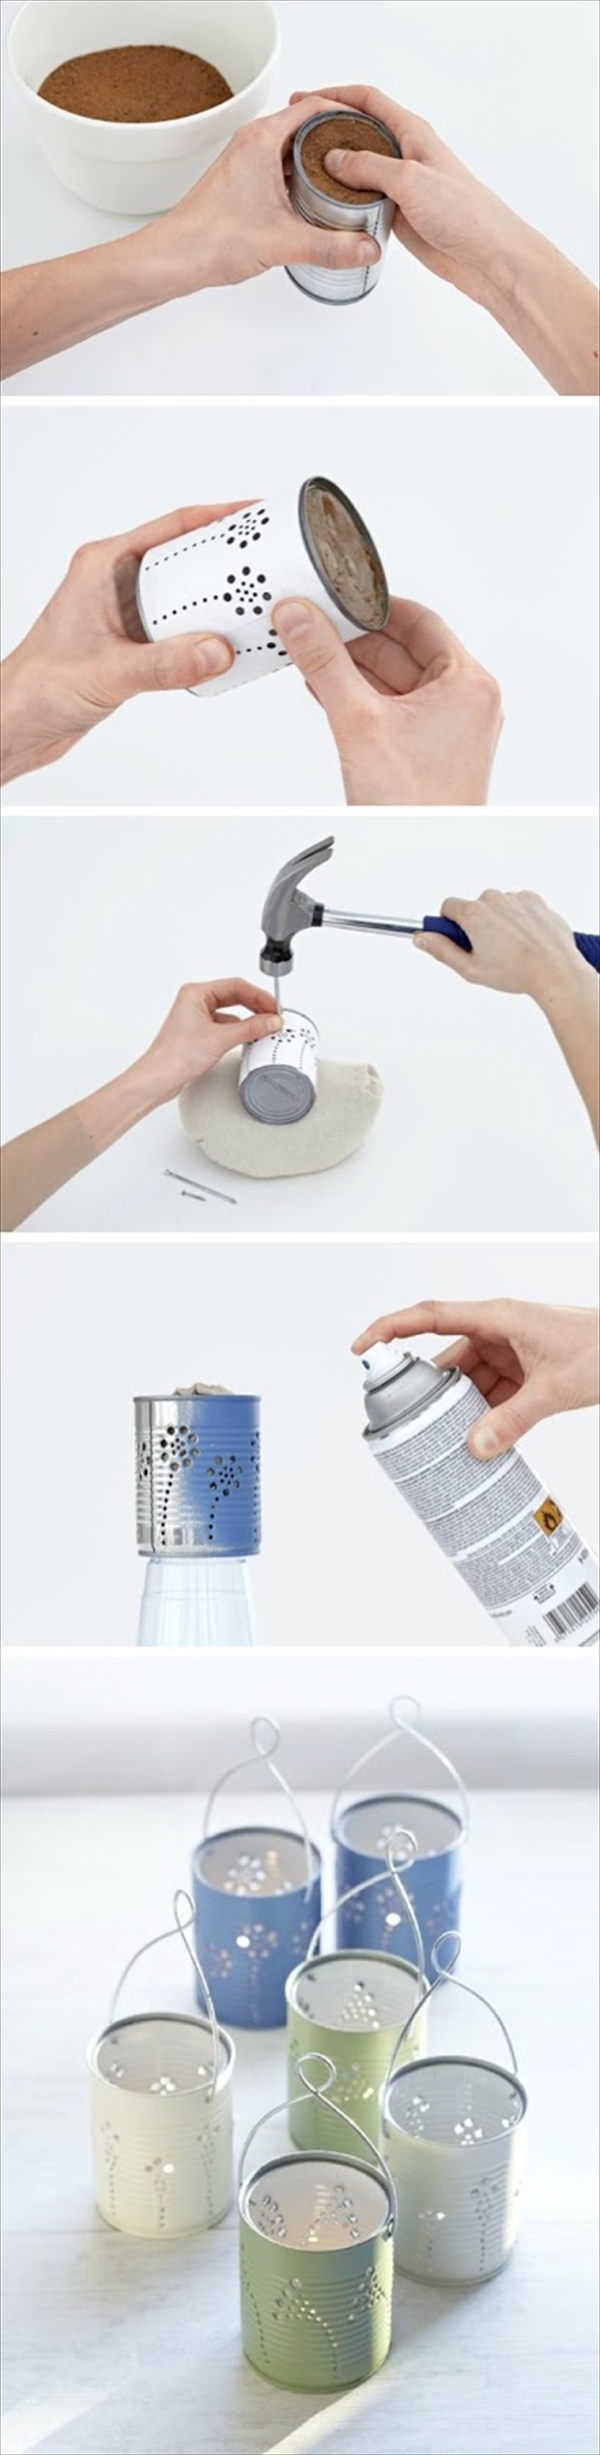 DIY Tin Can Lanterns Craft By Photo Upcycling Projects To Make Your Home Gorgeous